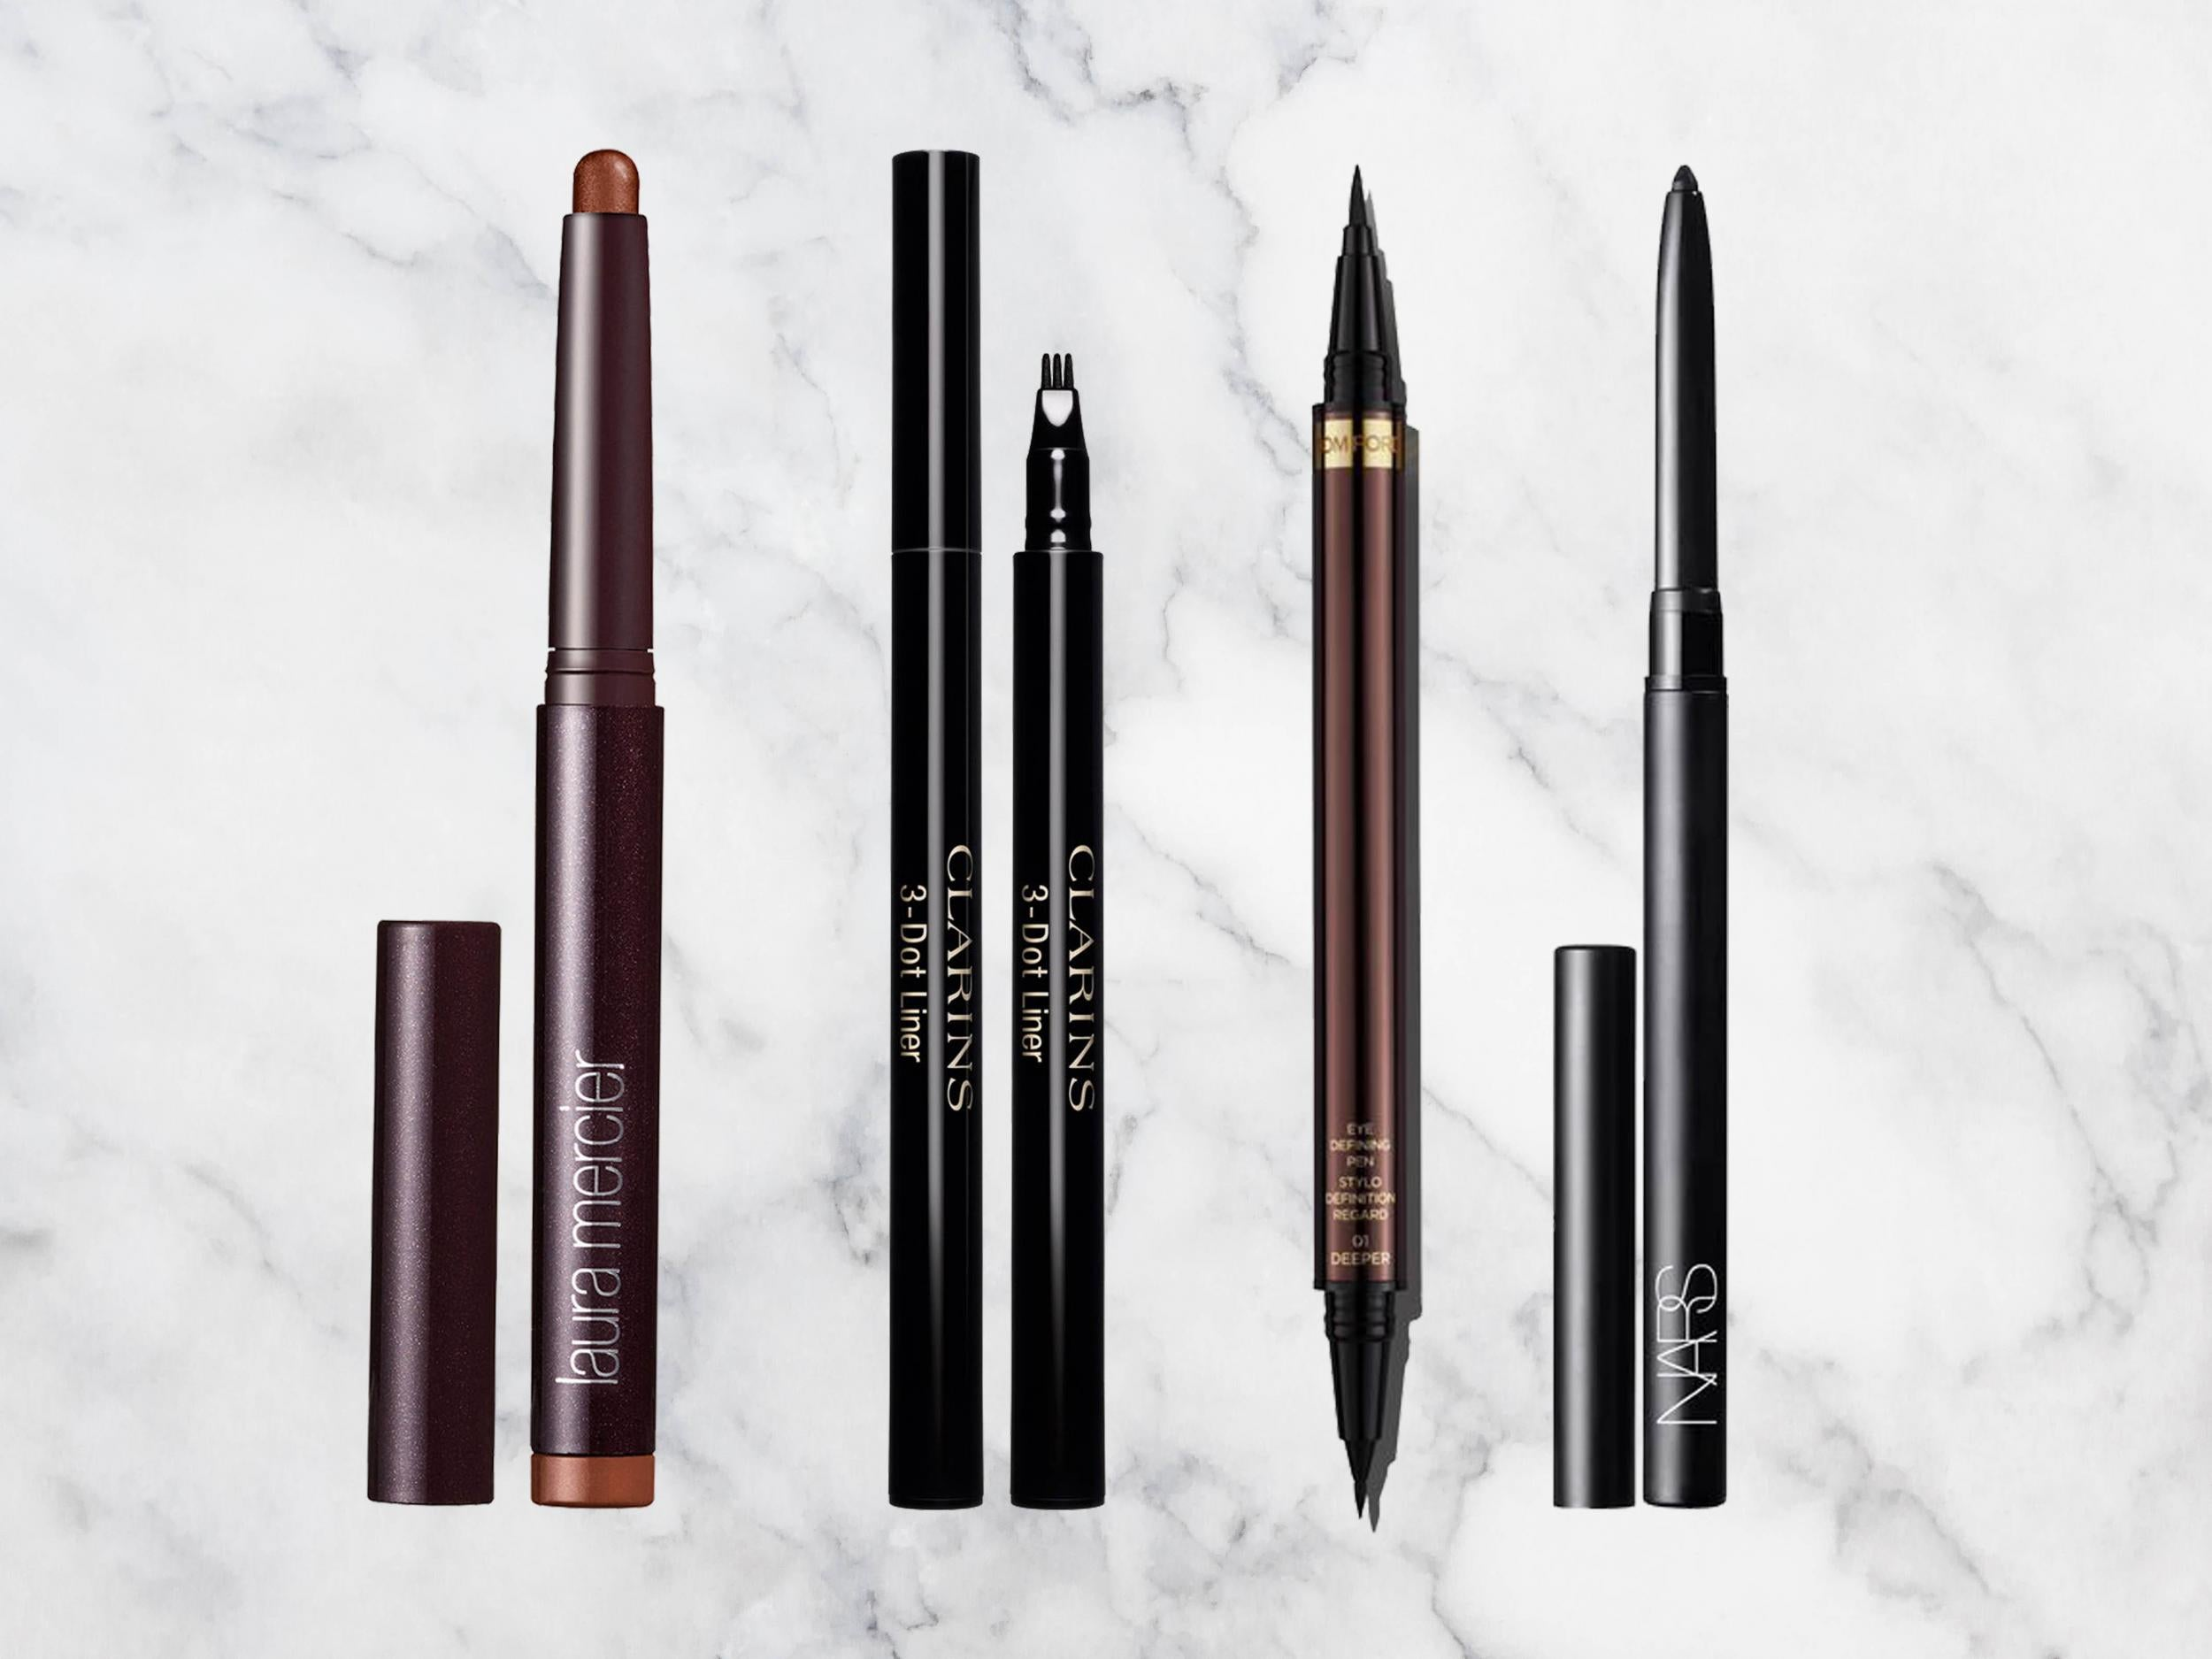 10 best eyeliners: Liquids, pencils and gel formulas that are easy to use and won't smudge